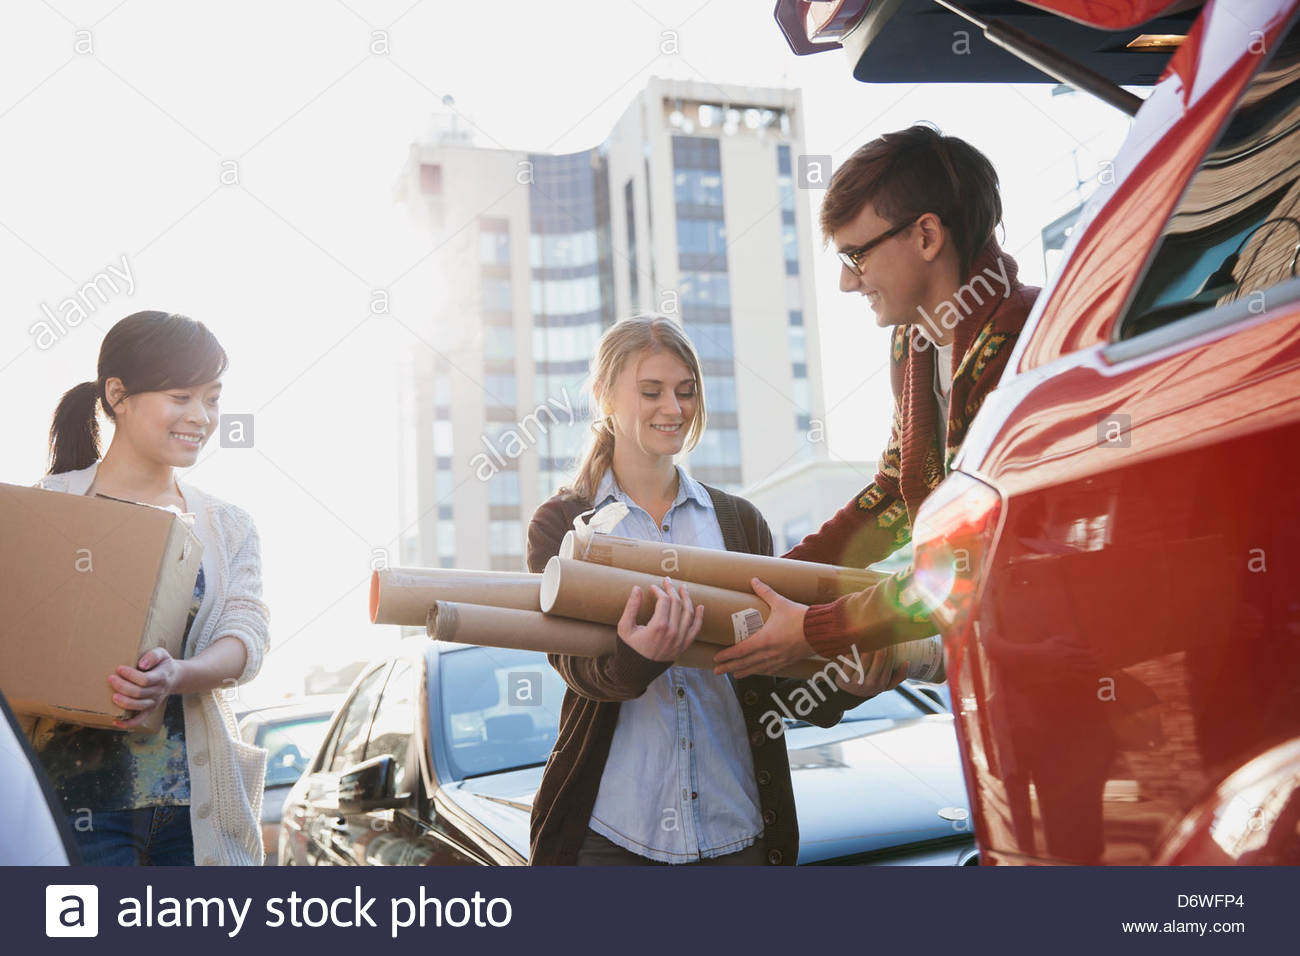 Happy design professionals with packages loading car - Stock Image